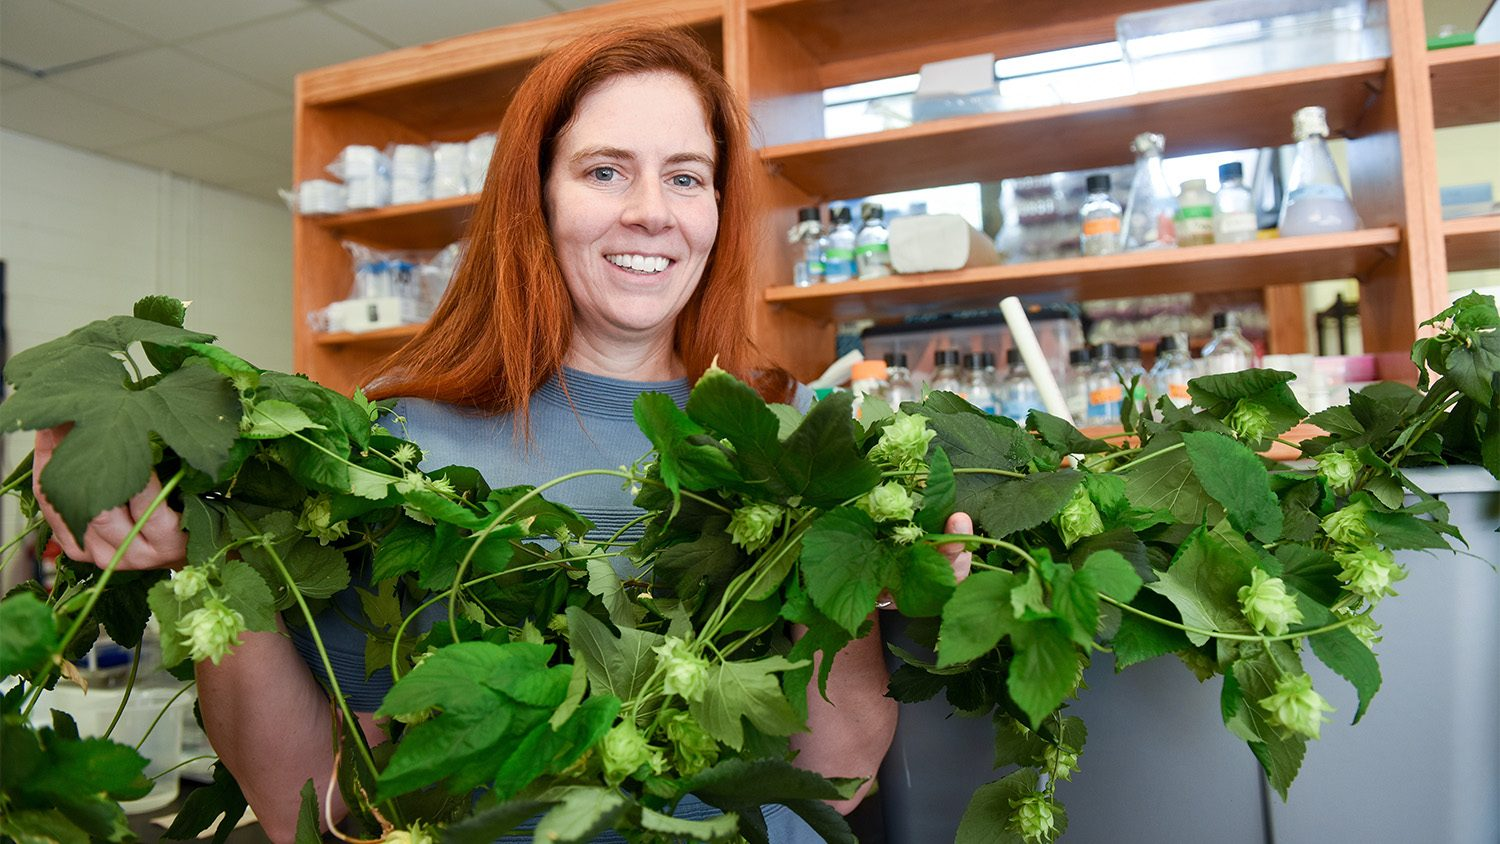 NC State's Dr. Colleen Doherty studies the circadian rhythm of plants. Among the projects she's involved with: finding ways to make hops plants more suitable for North Carolina day length.